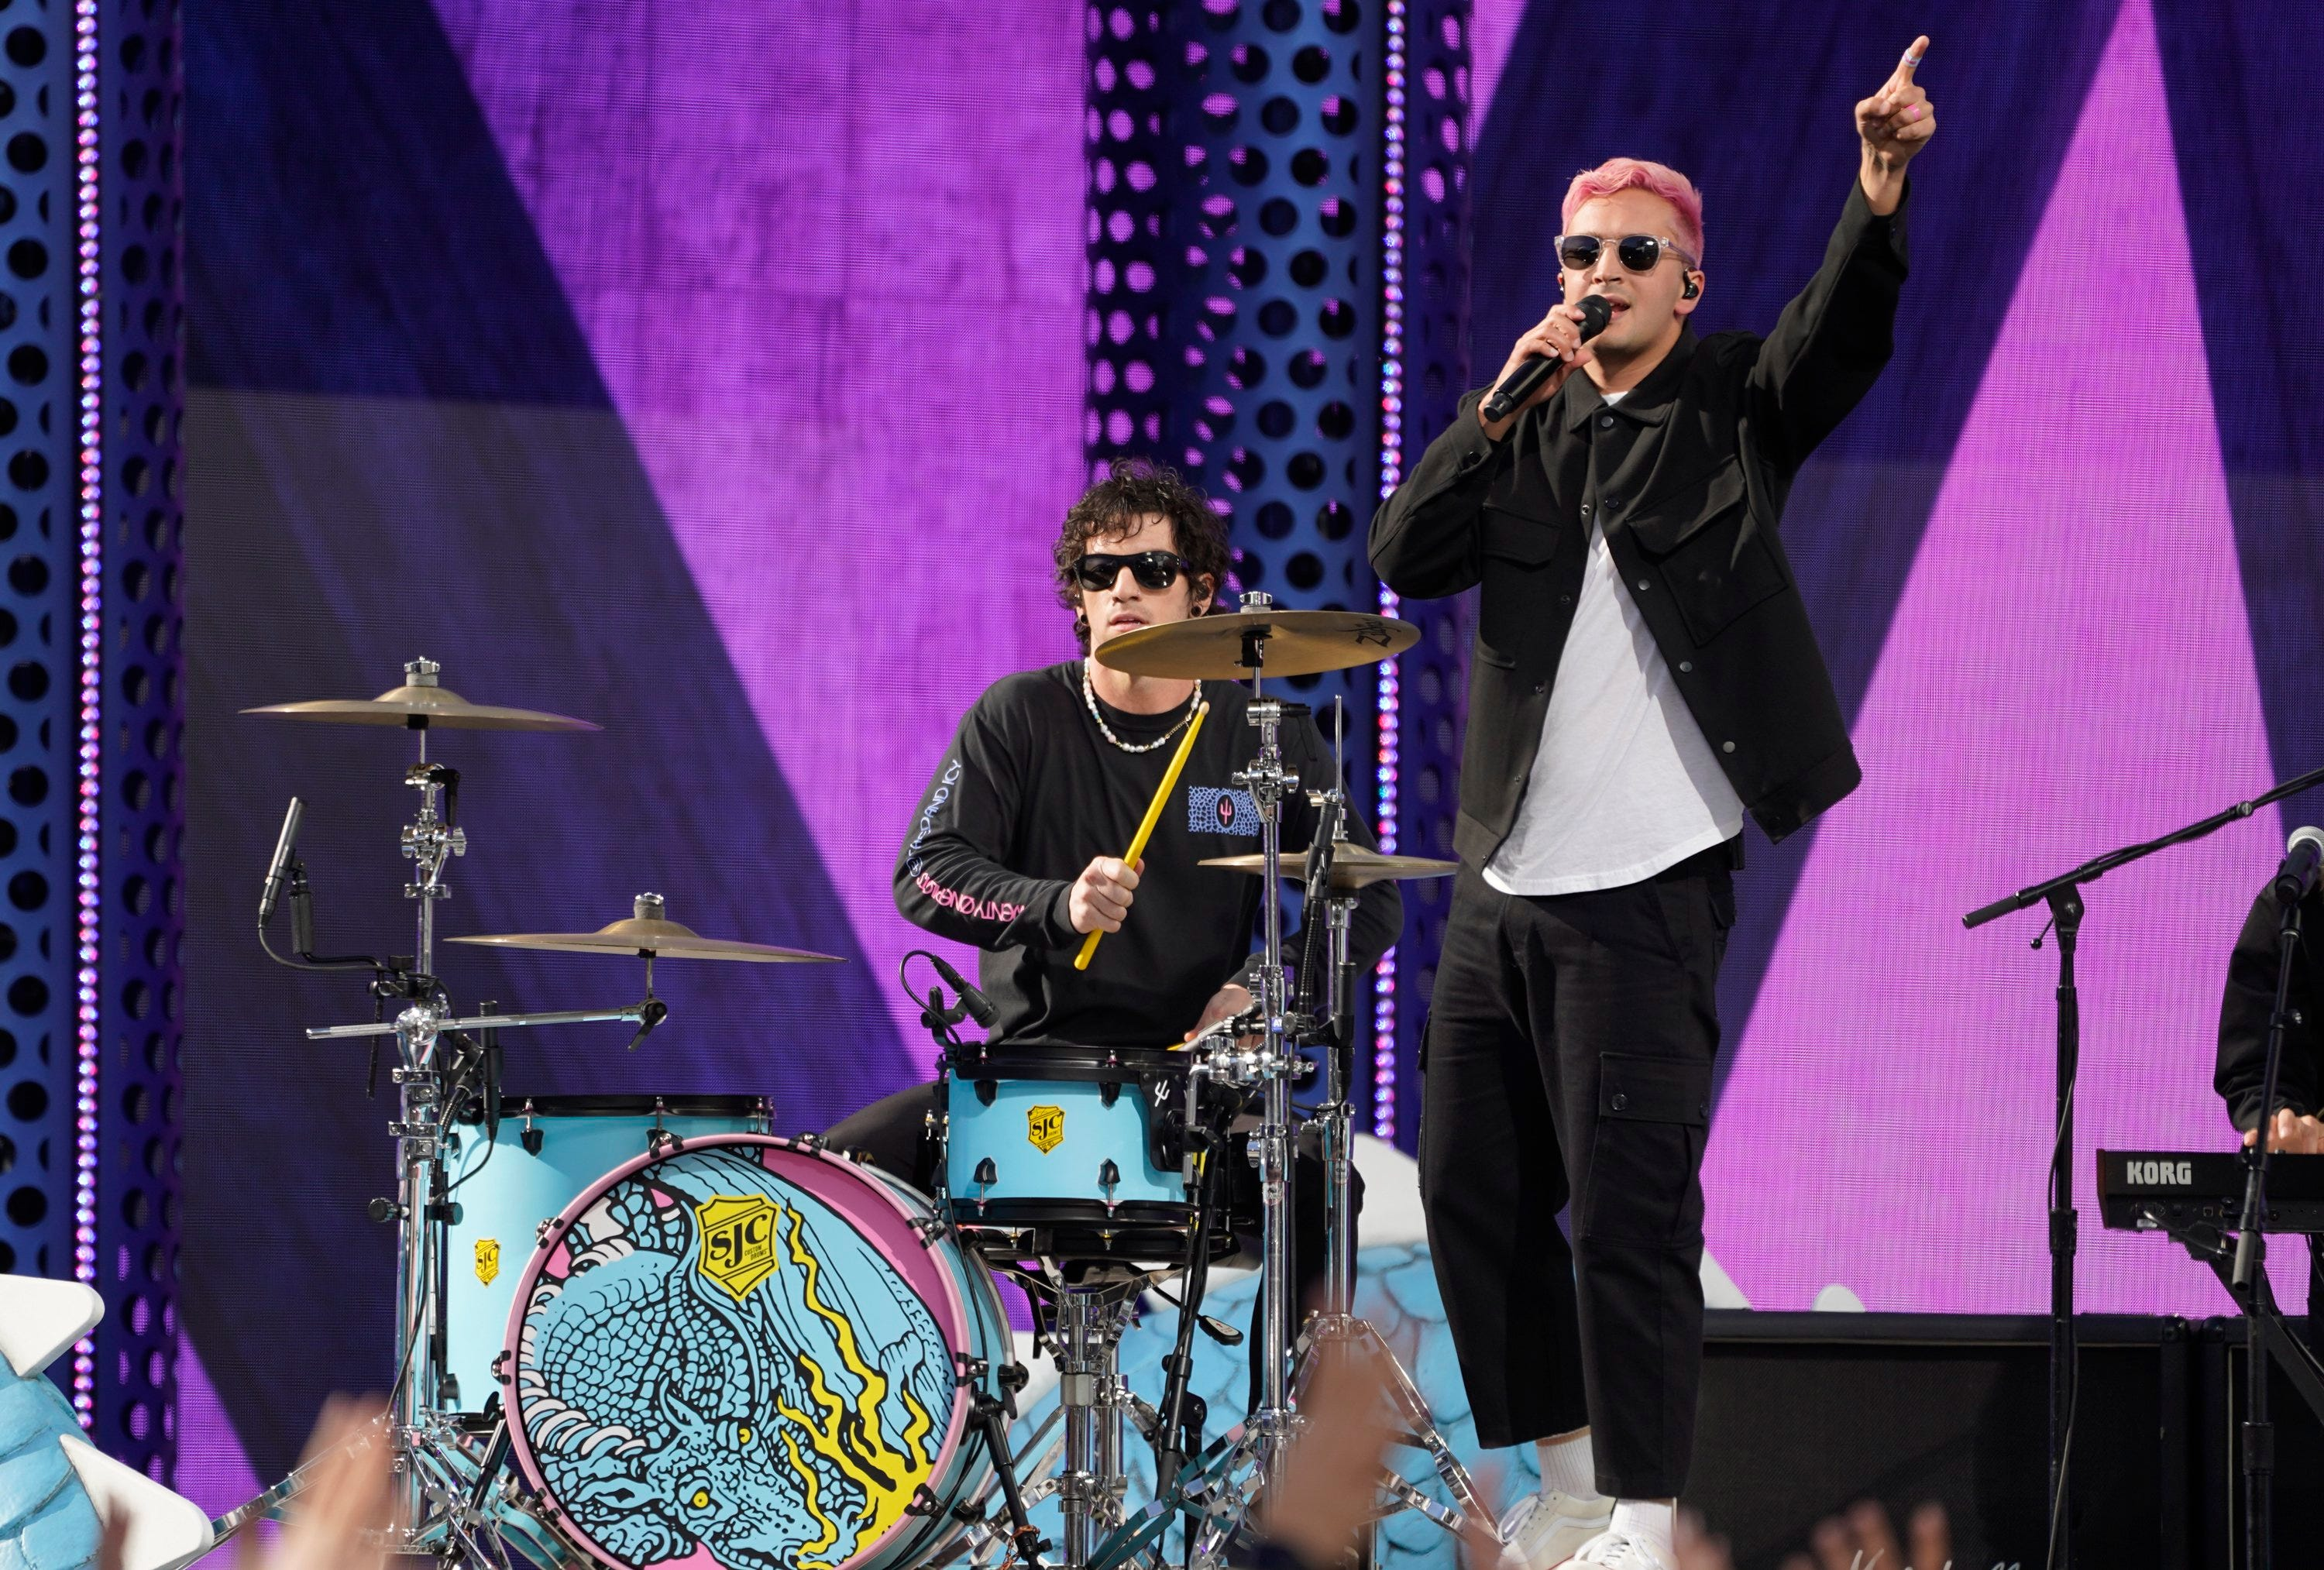 Twenty One Pilots  pop-up show builds momentum for October performances in Columbus at Nationwide Arena